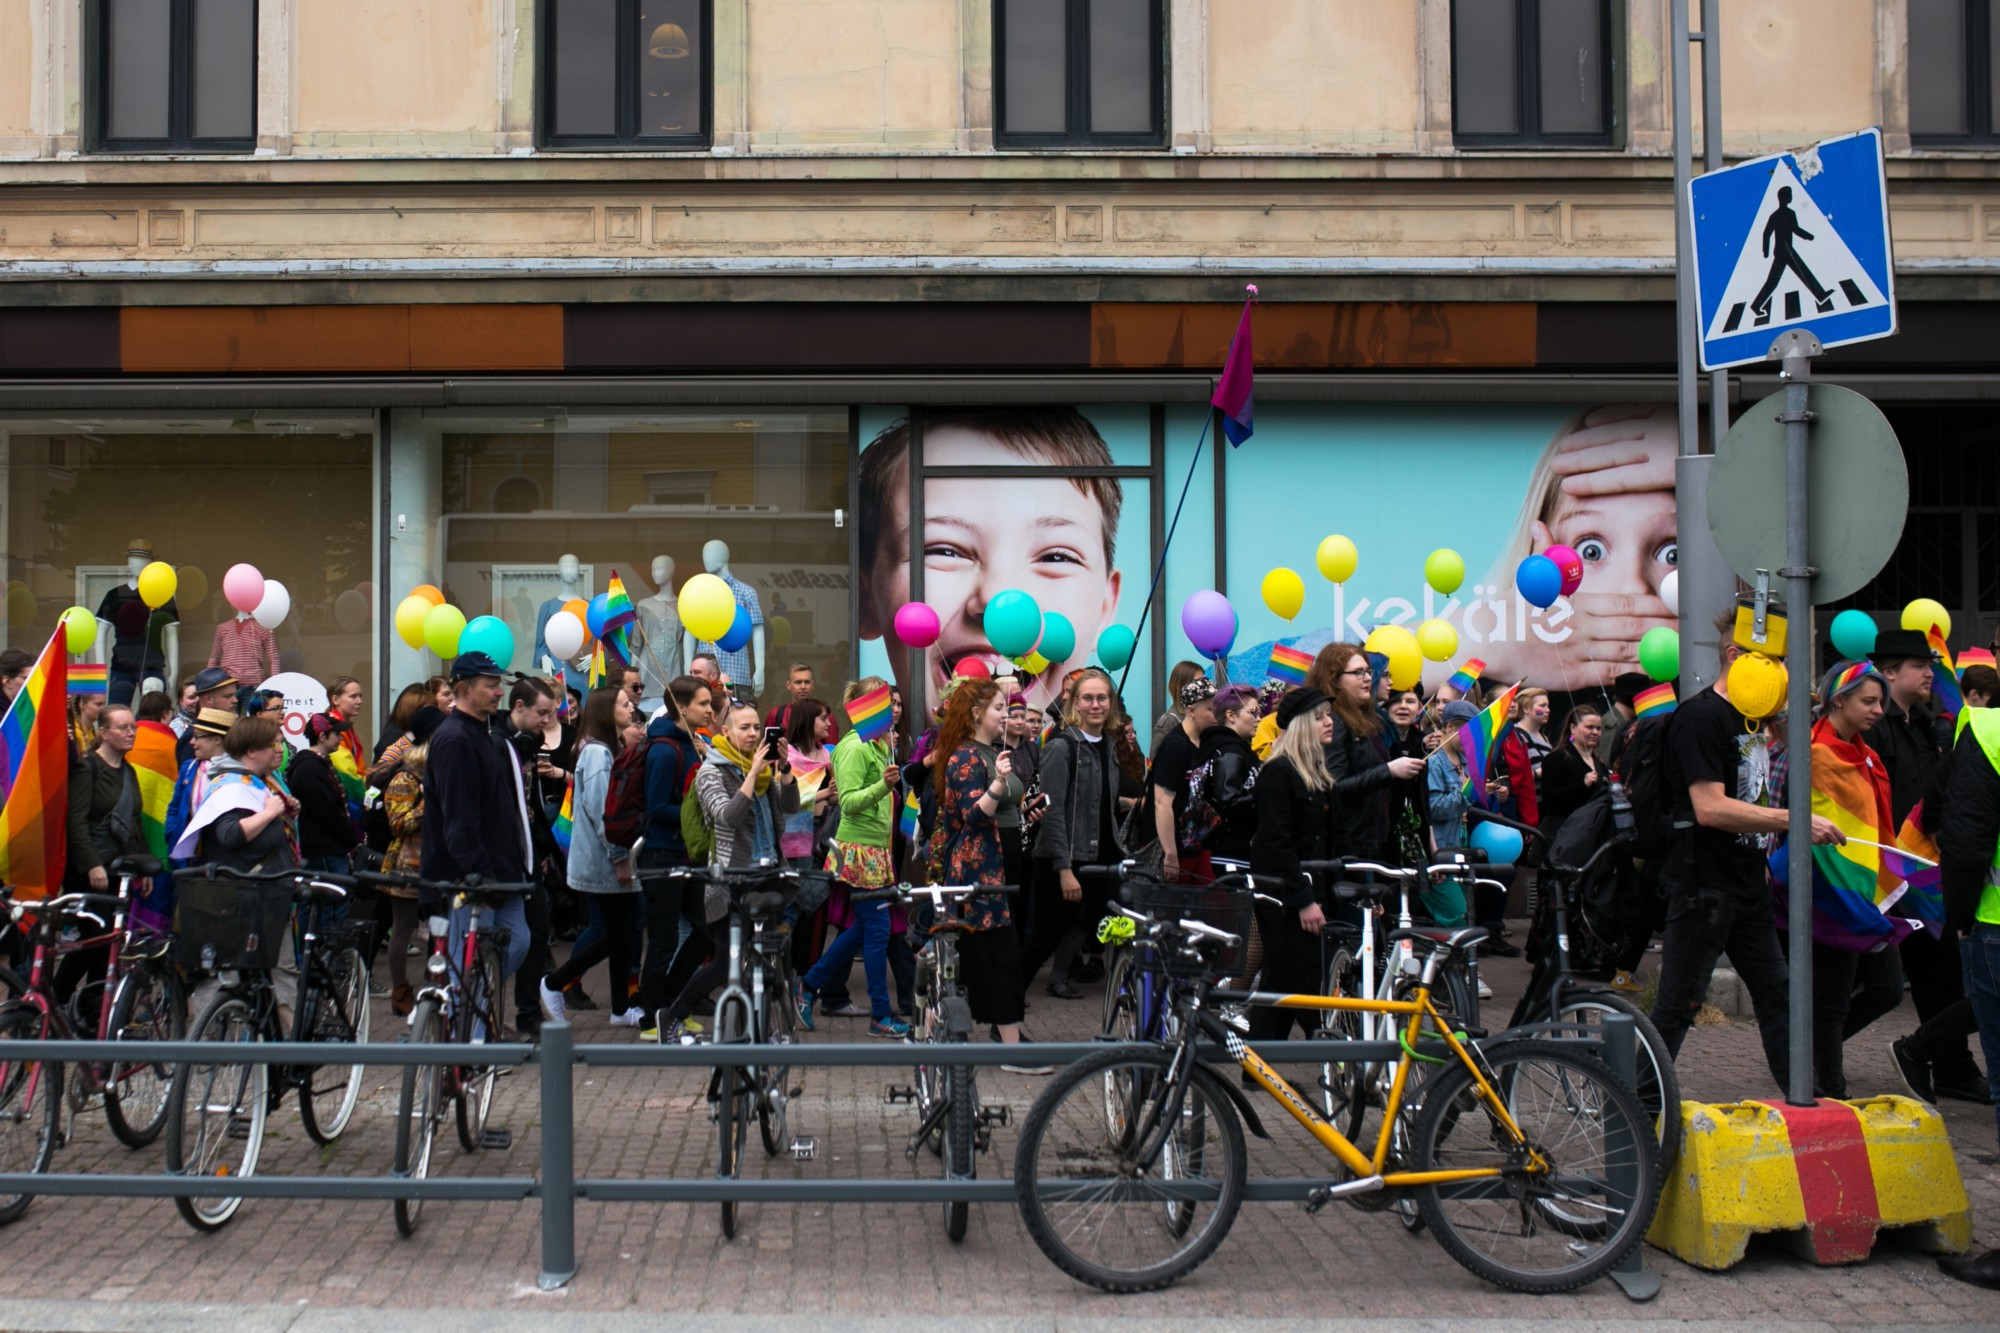 2,000 People Join the Pride Parade in Tampere – View the Pictures